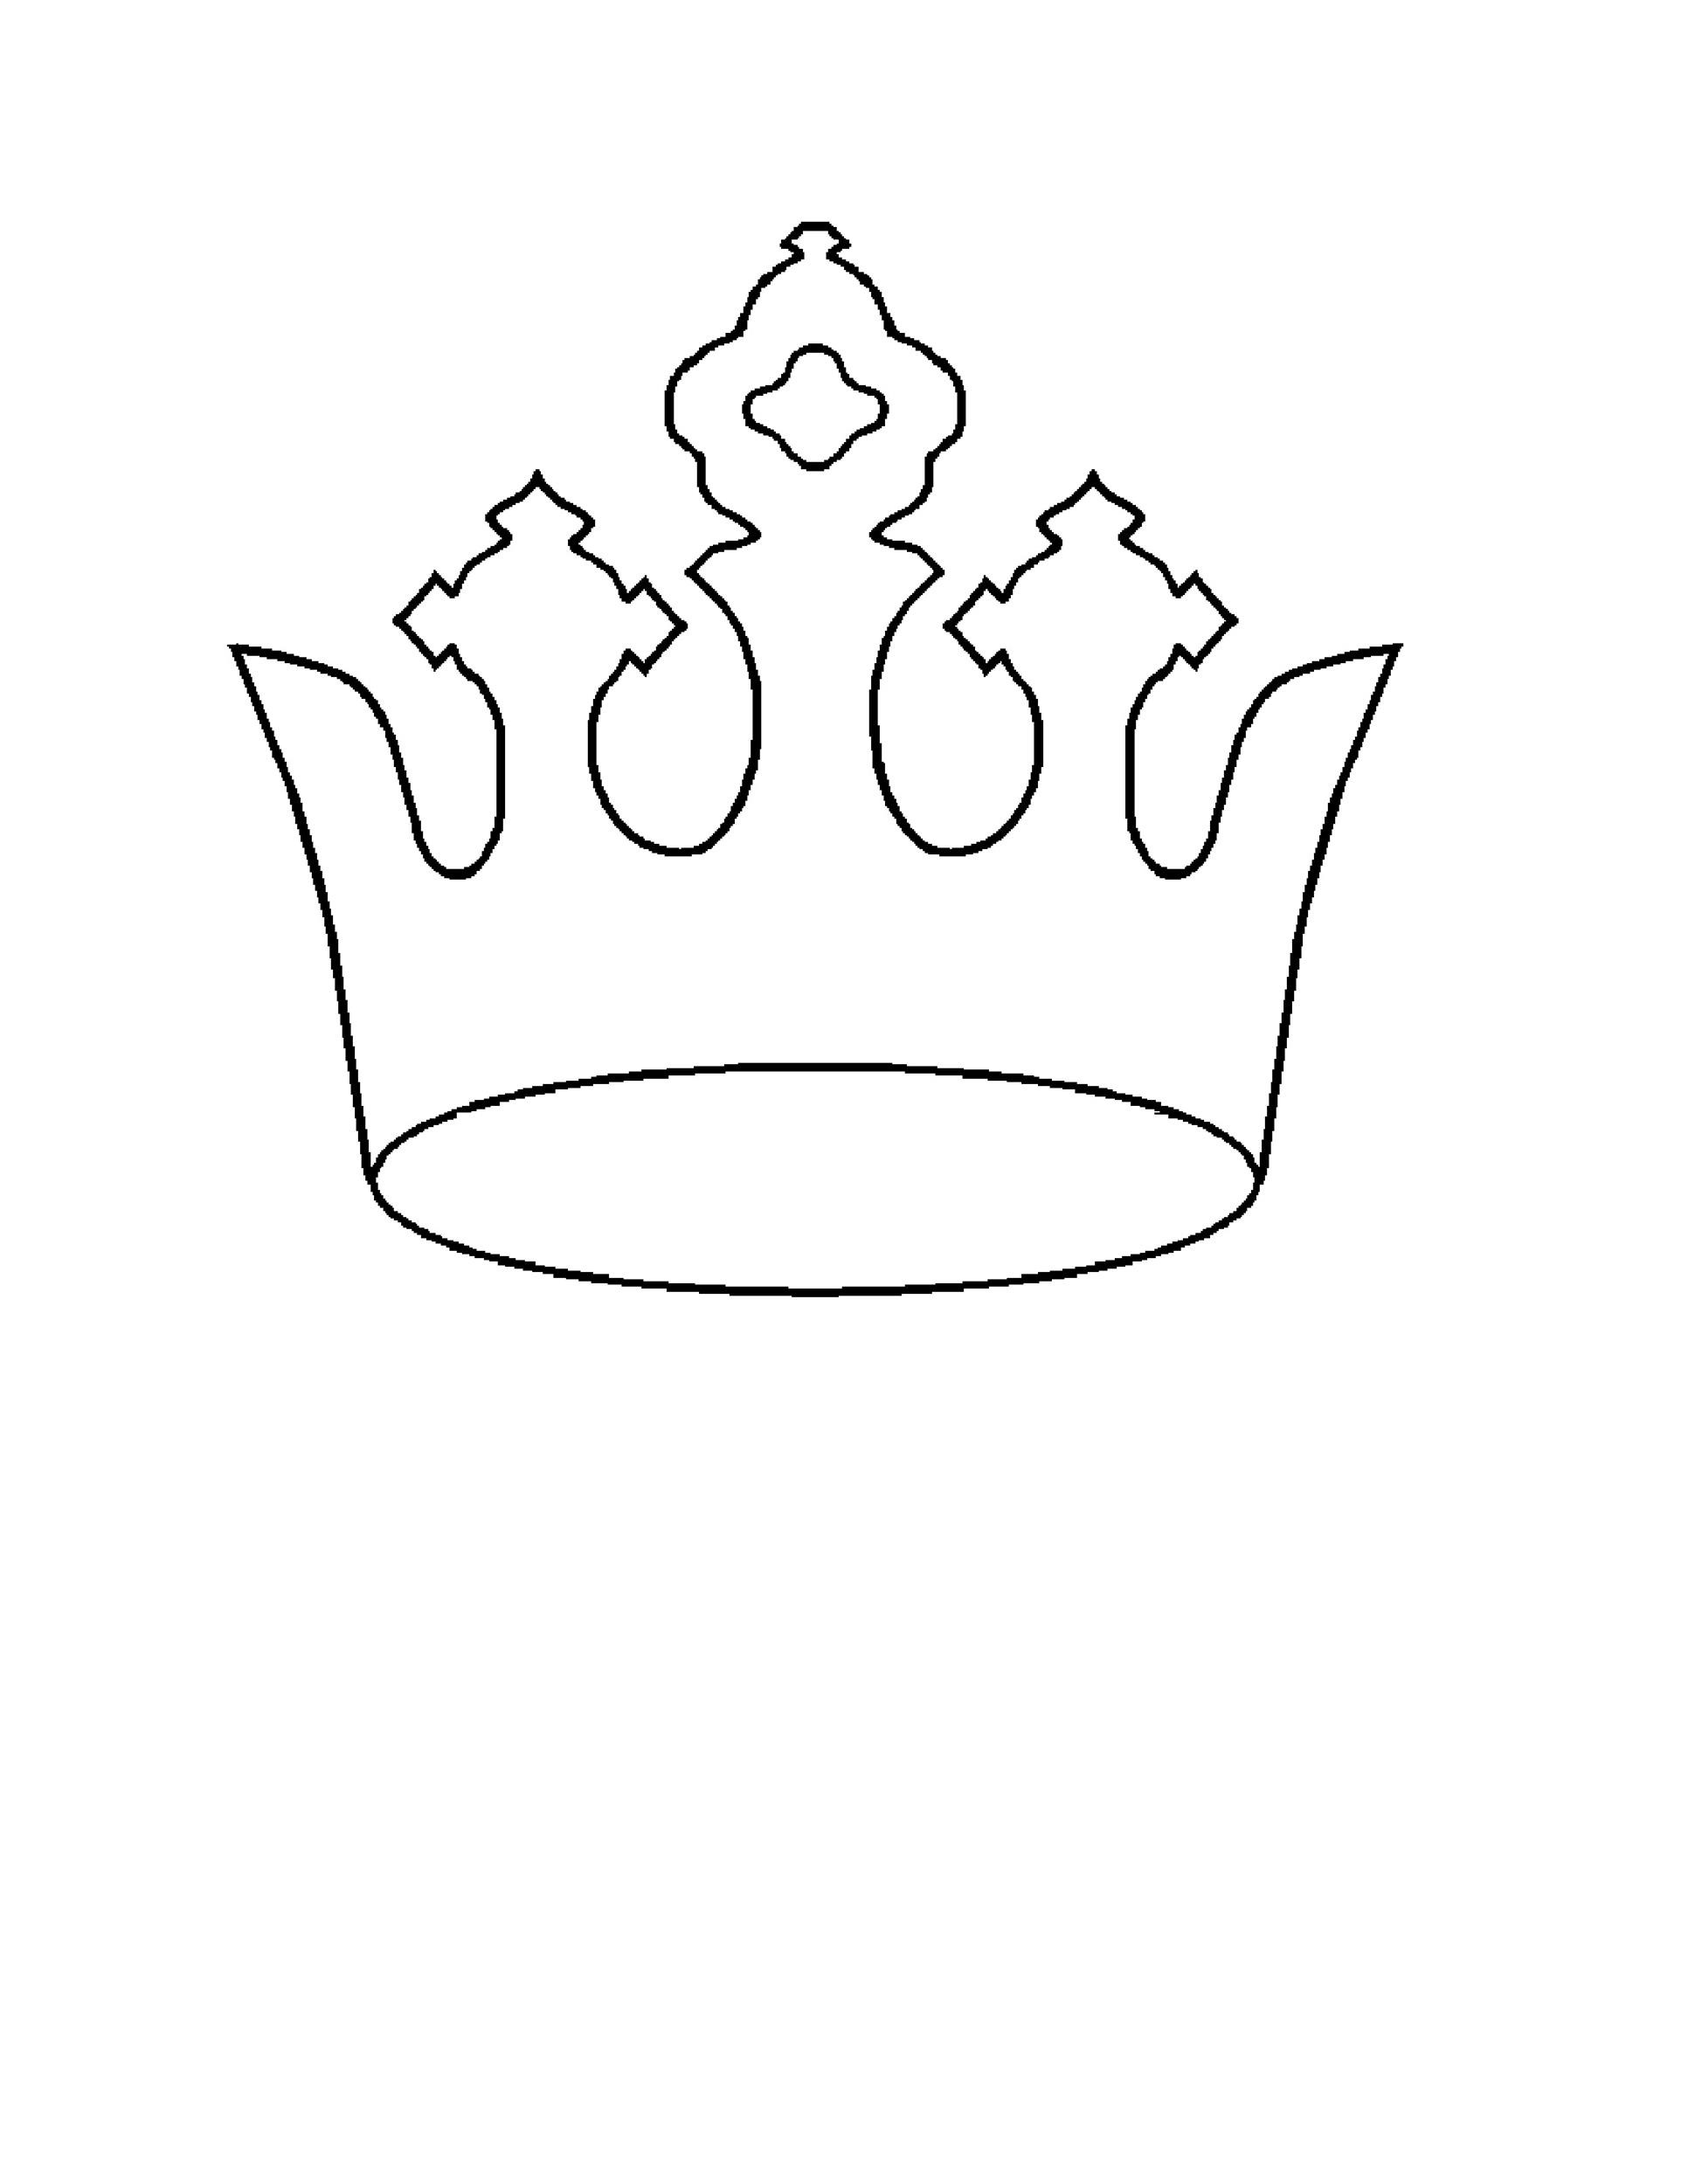 photograph relating to Birthday Crown Printable named 45 Totally free Paper Crown Templates ᐅ Template Lab